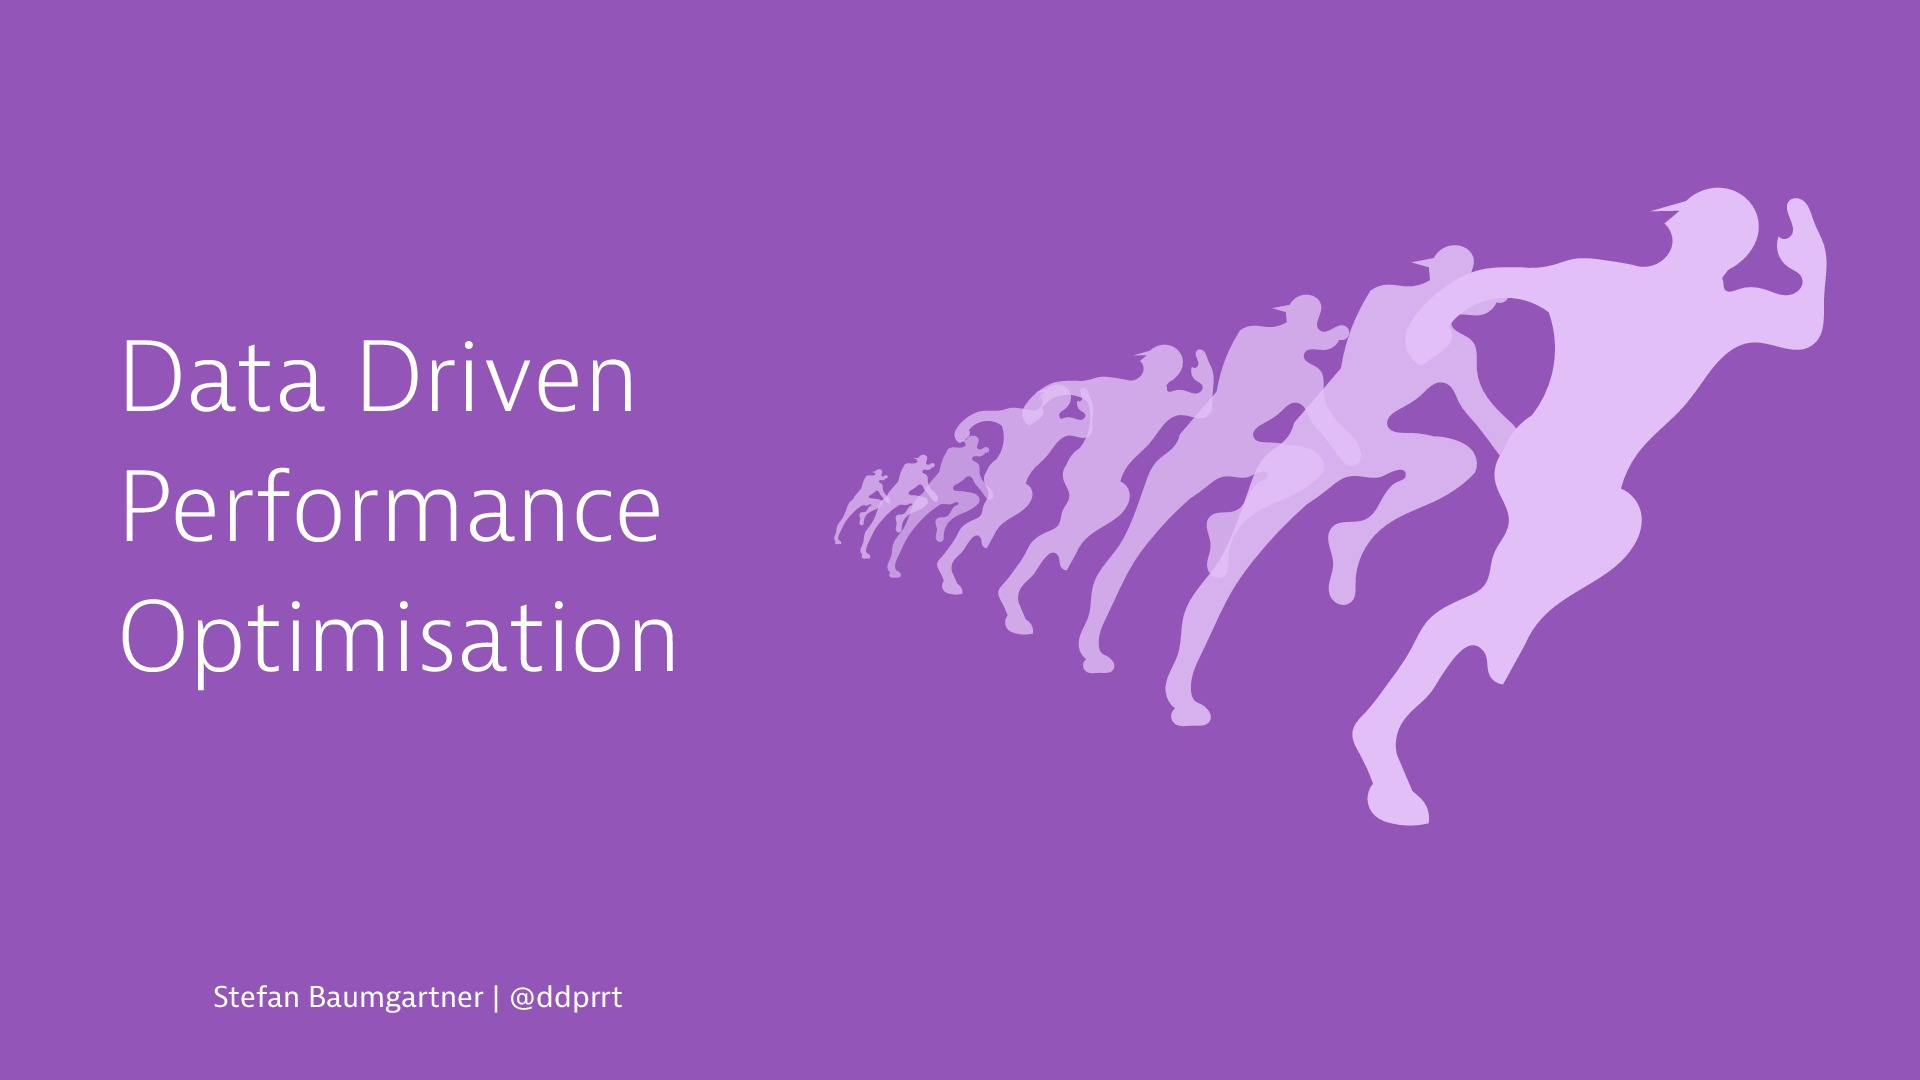 Data Driven Performance Optimisation